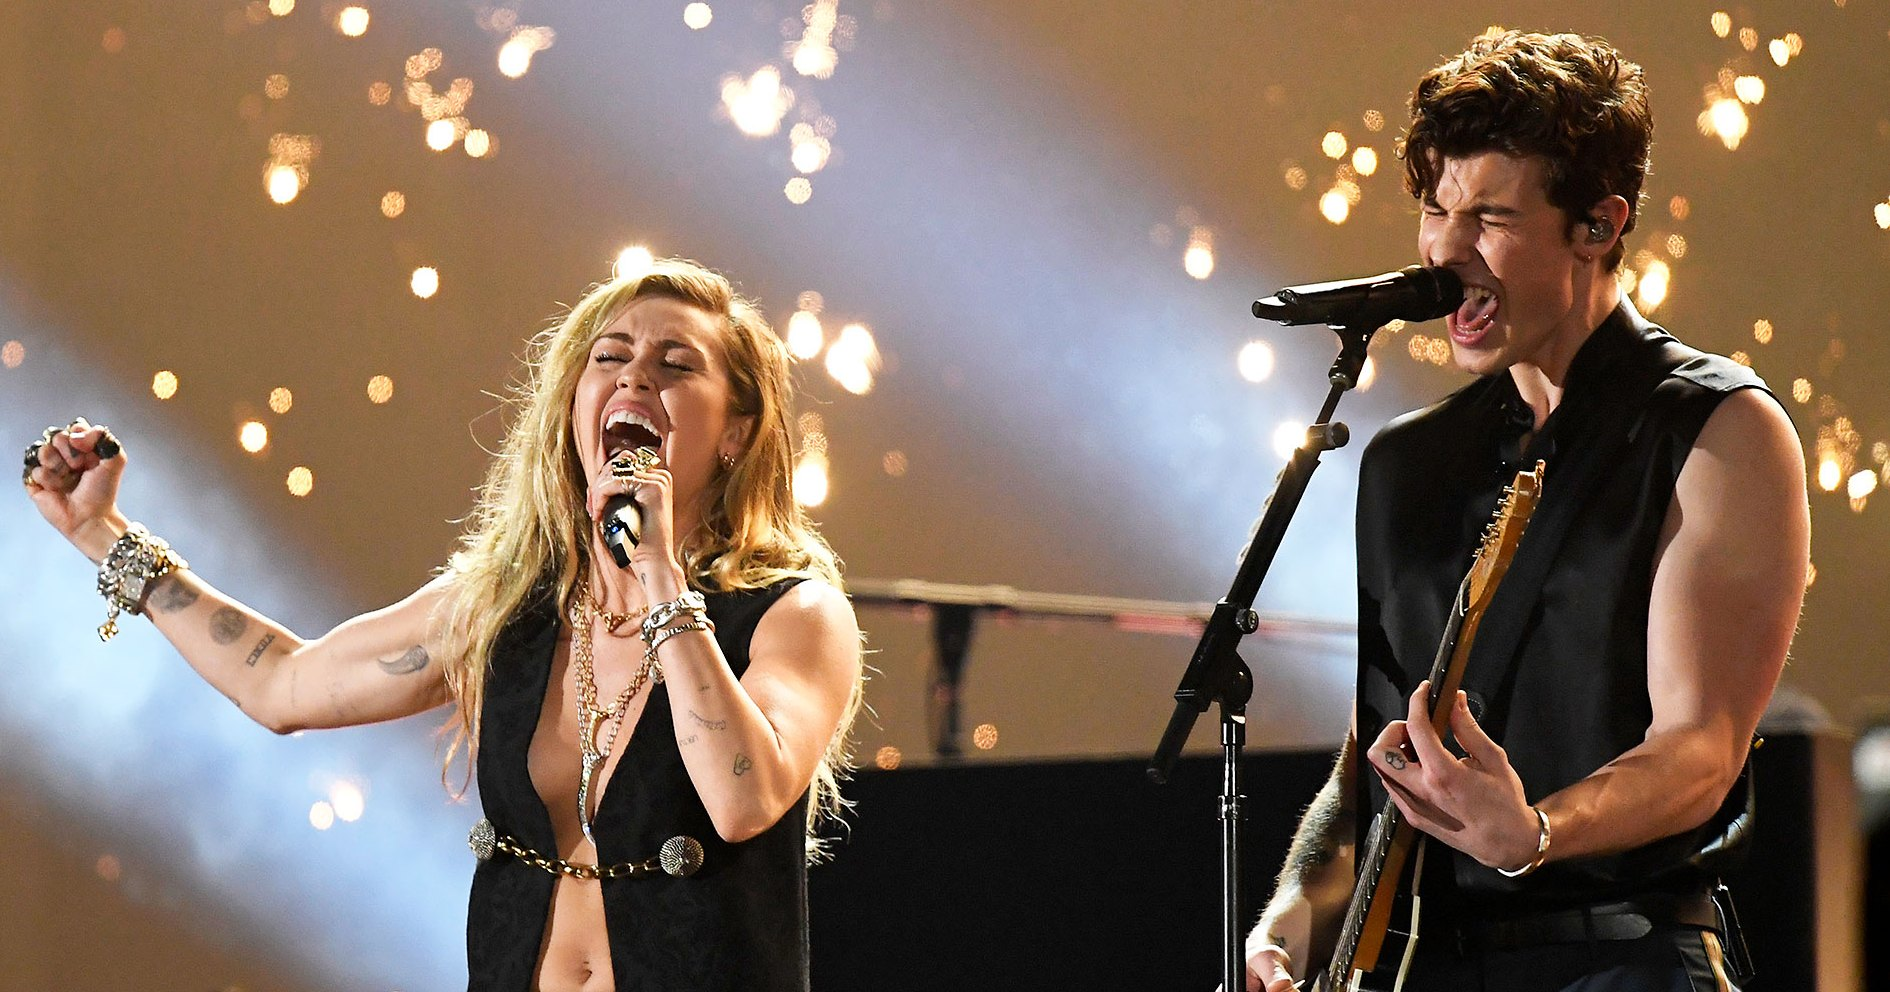 From Shawn and Miley to Diana, Watch the 5 Best Grammy Performances